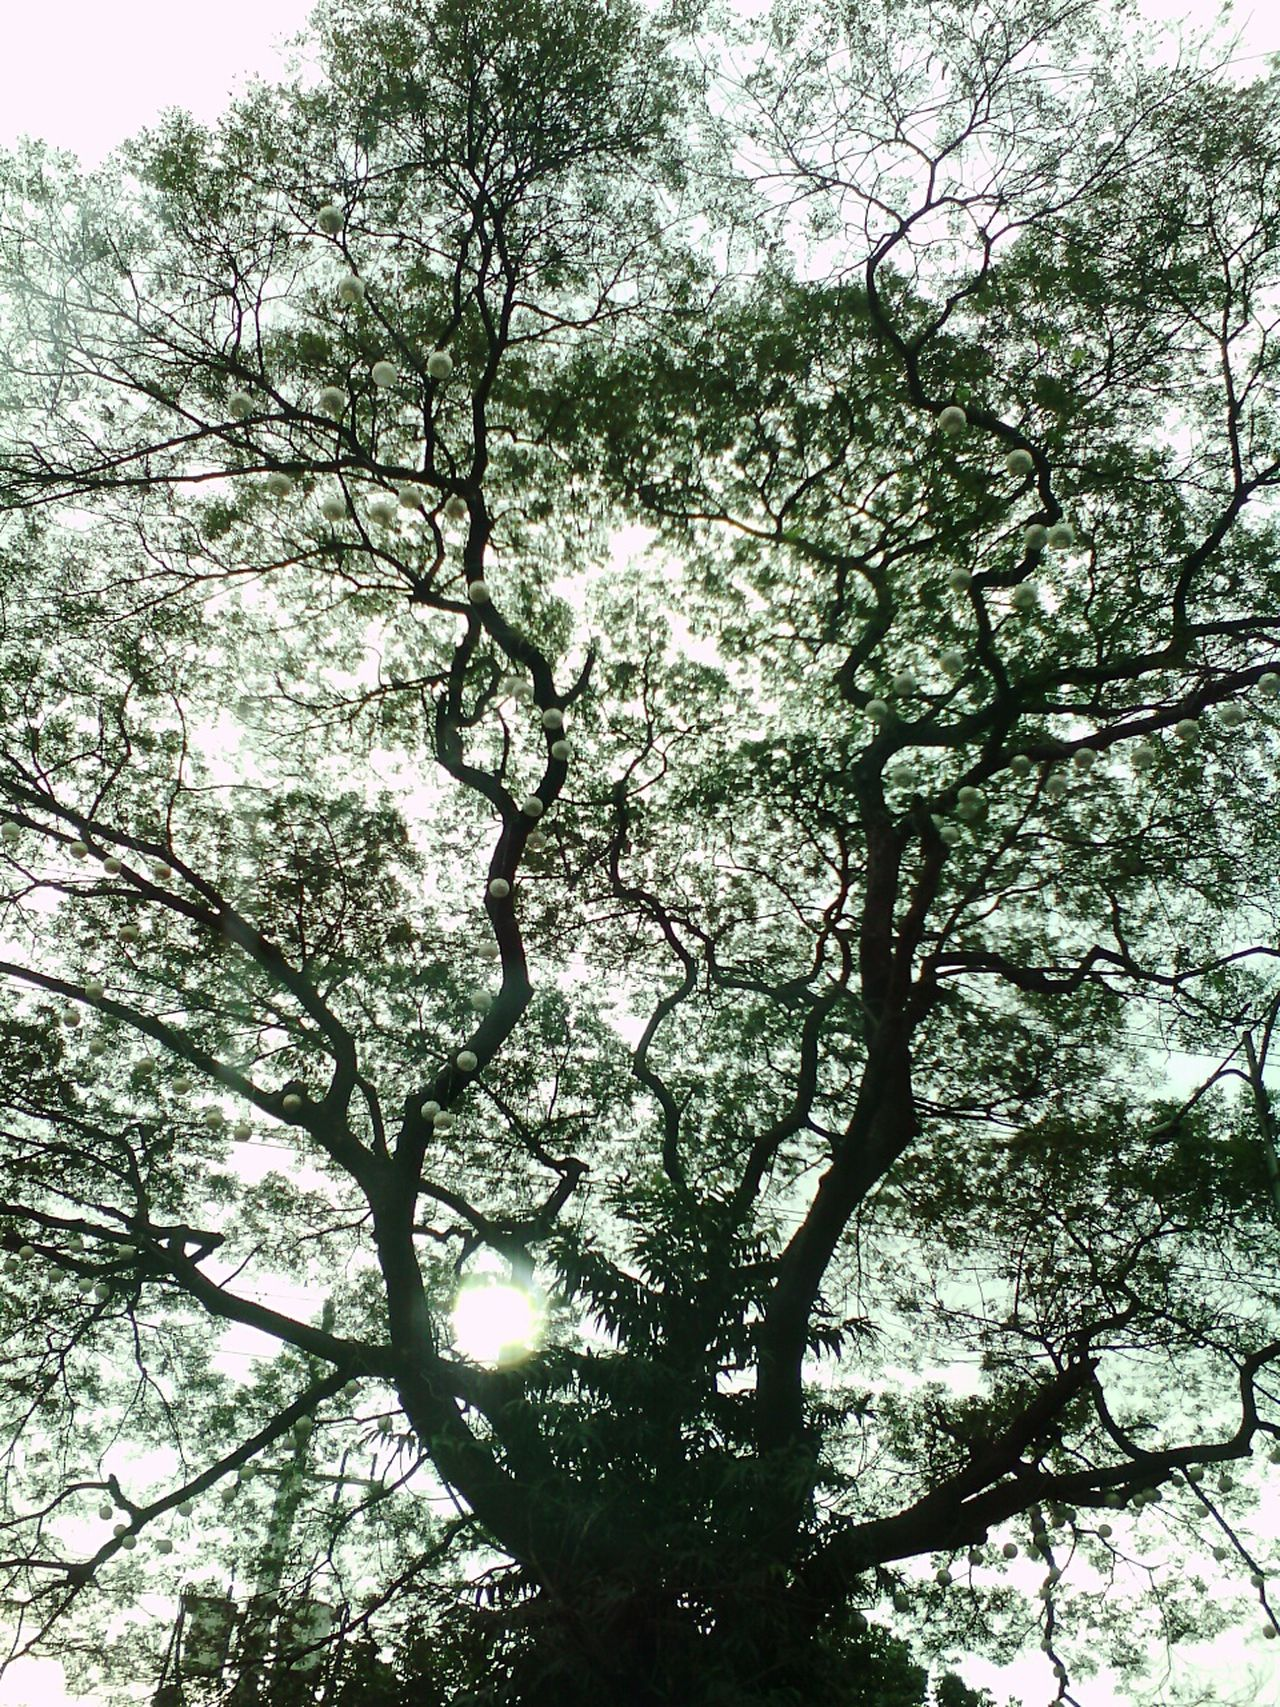 Tree Nature Growth No People Beauty In Nature Sky Backgrounds Outdoors Branch Outdoor Beauty Treetop Outdoors, Outside, Open-air, Air, Fresh, Fresh Air, Outdoors Photograpghy  Philippines ❤️ Tranquility Beauty In Nature Nature Tree Tree Art Growth Tree Silhouette